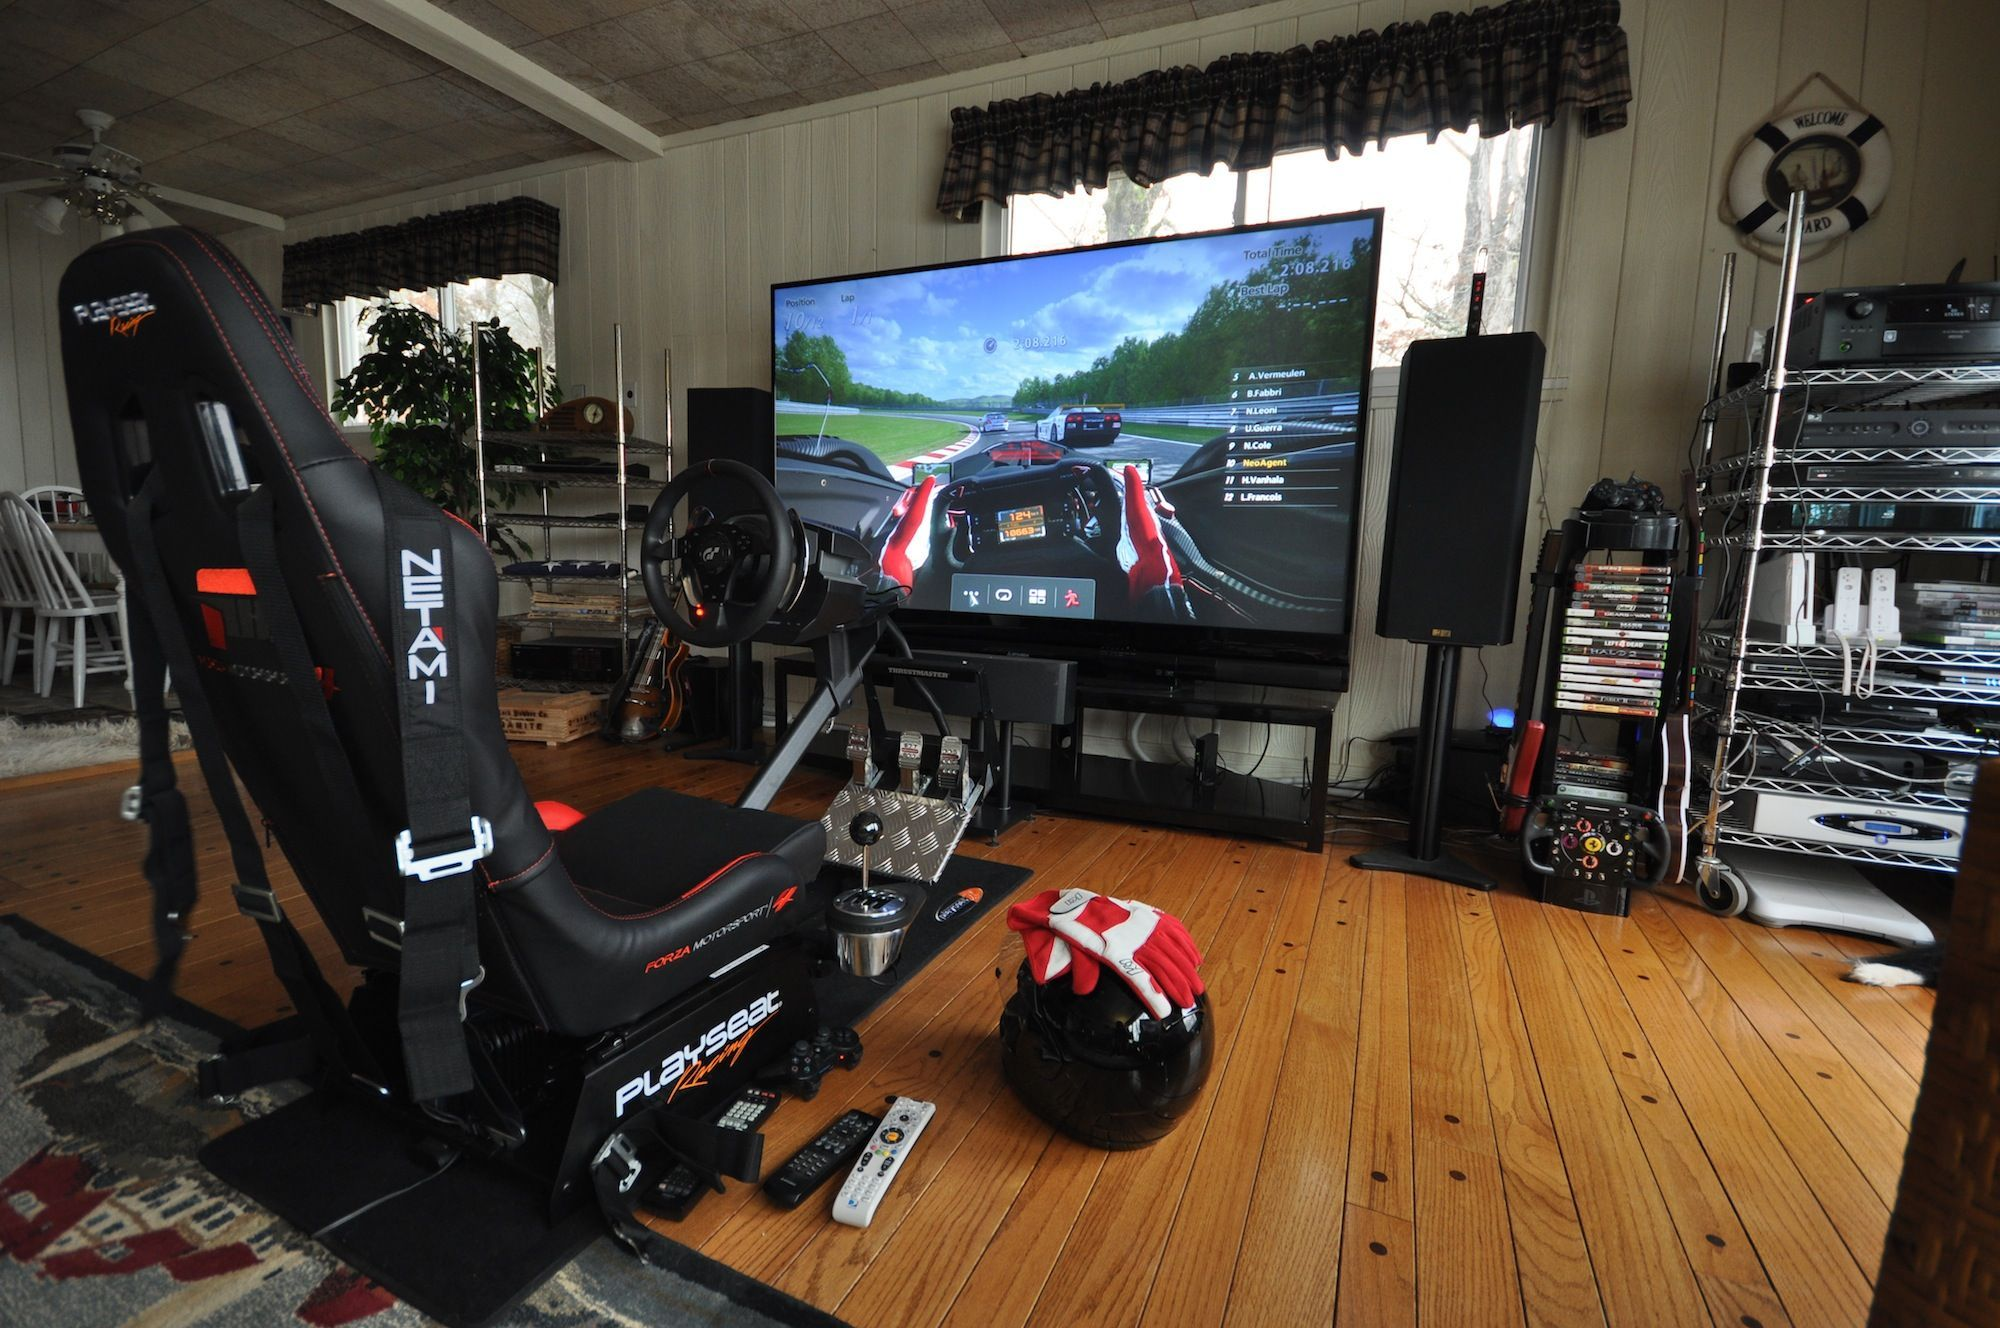 F1 Gaming Chair Pretty Cool But Not Sure Why There Are Seatbelts